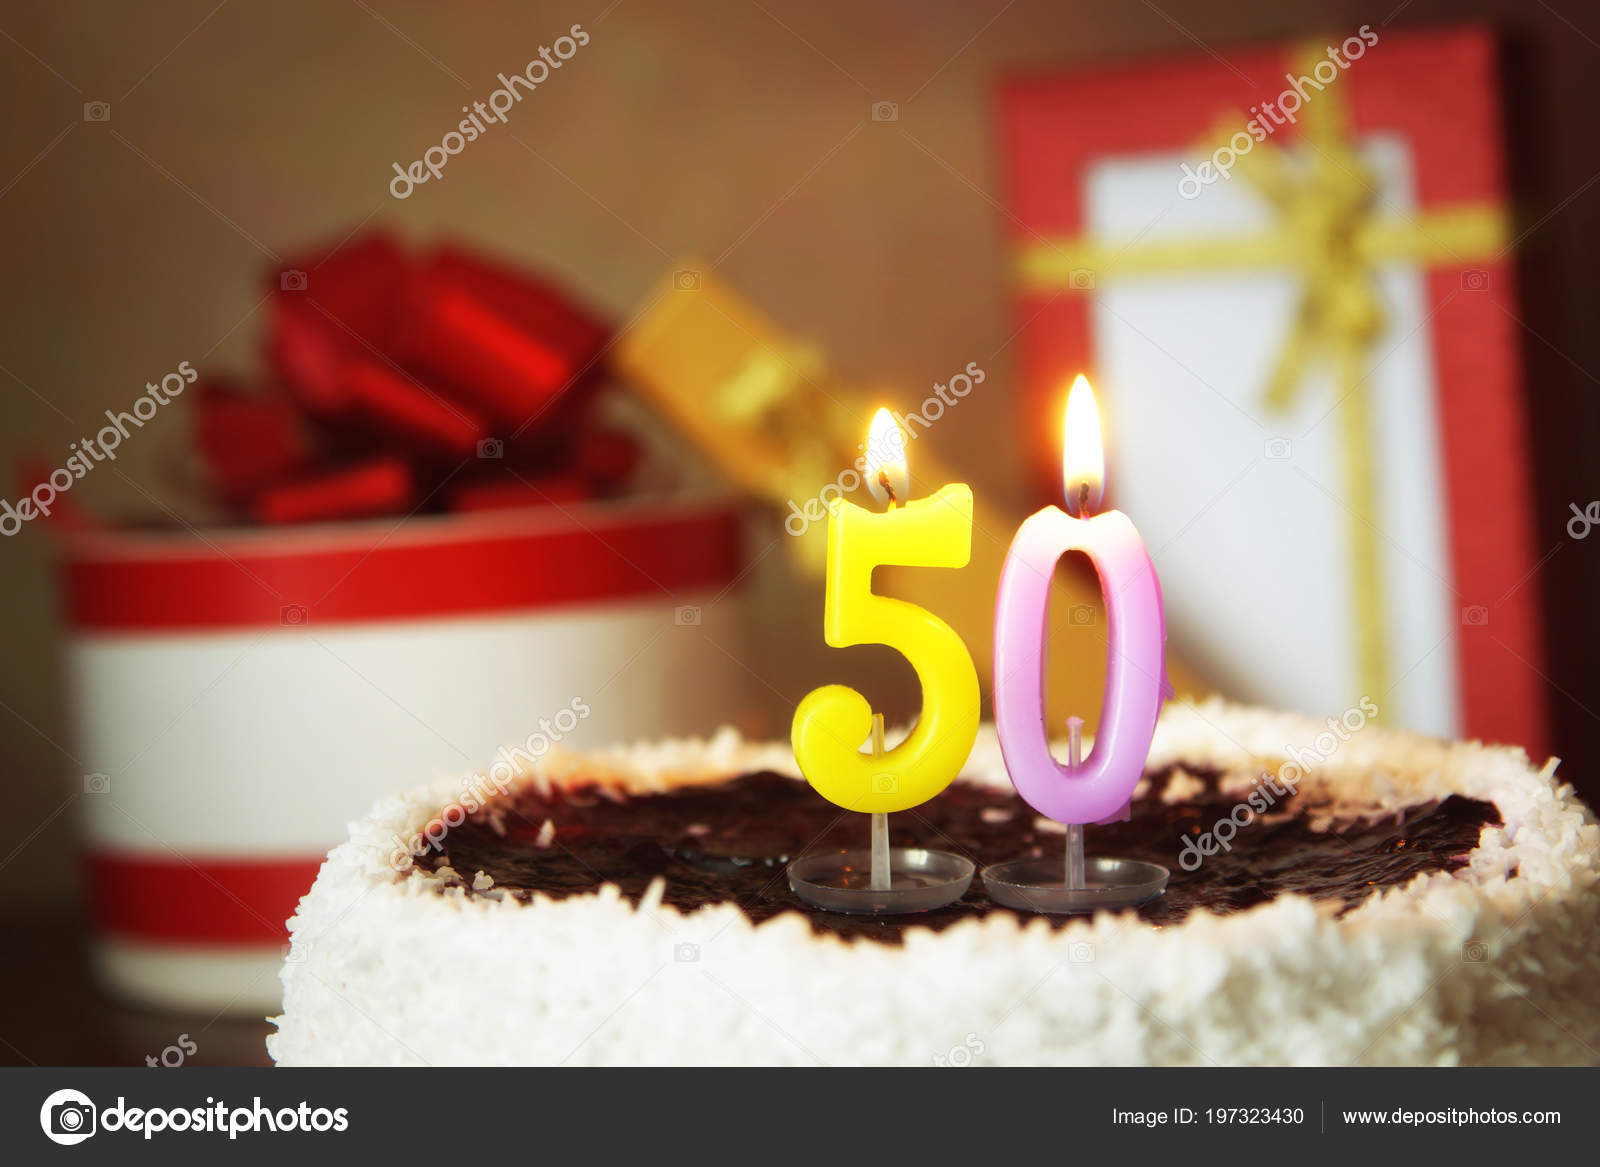 Fifty Years Birthday Cake Burning Candles Gifts Stock Photo